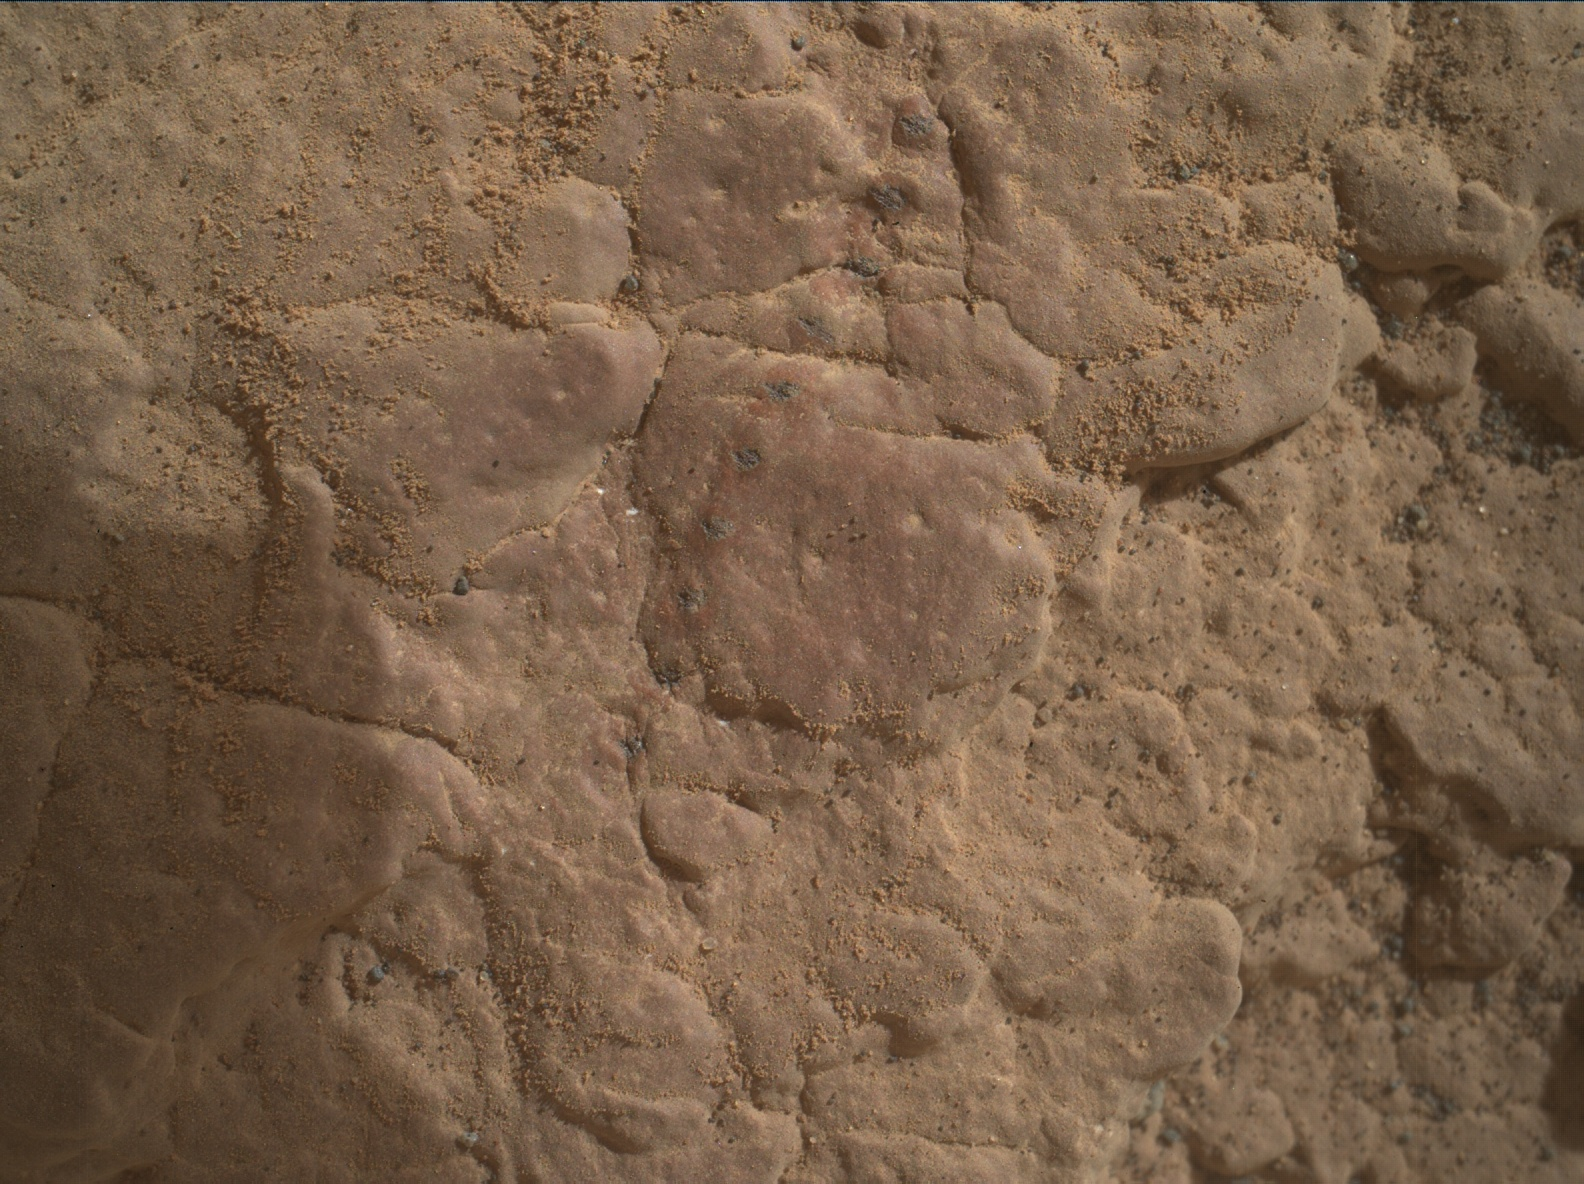 Nasa's Mars rover Curiosity acquired this image using its Mars Hand Lens Imager (MAHLI) on Sol 2356